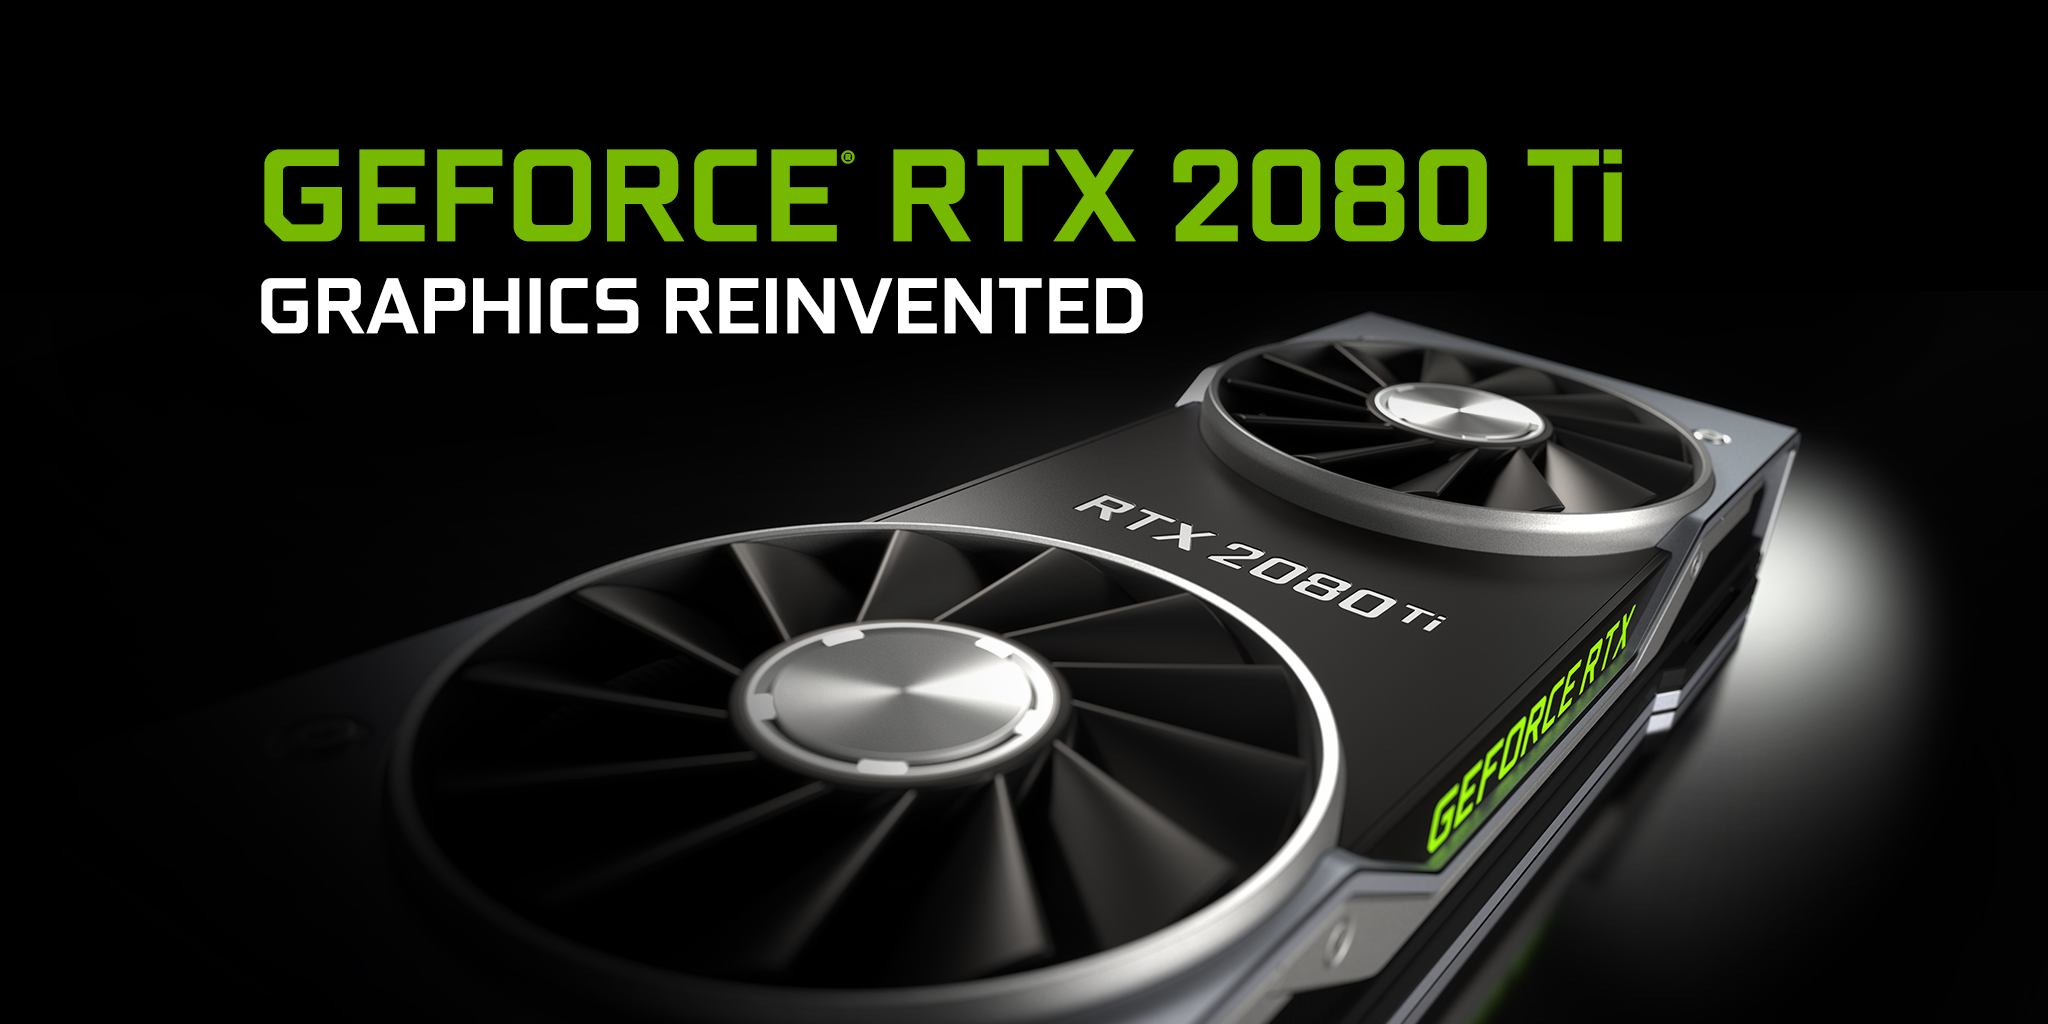 NVIDIA-GeForce-RTX-2080-Ti-Delisted-Feature.jpg